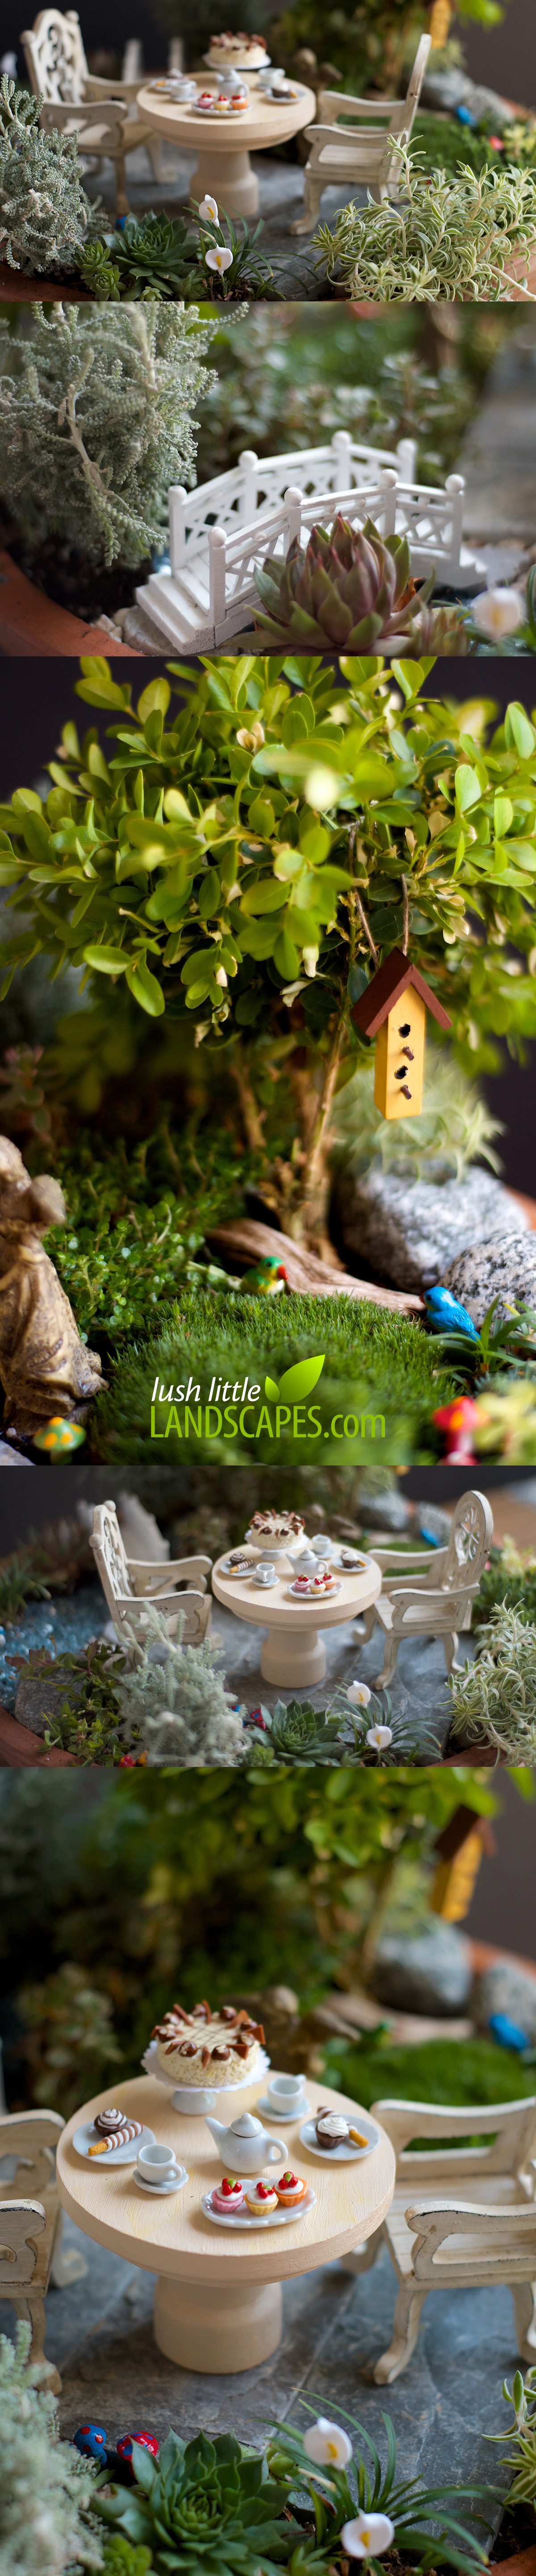 Miniature Garden Tea Party | Lush Little Landscapes look like a real garden - complete with a mini birdhouse, tiny birds, little mushrooms, miniature footbridge, and a dessert of cupcakes and cake with your tea.